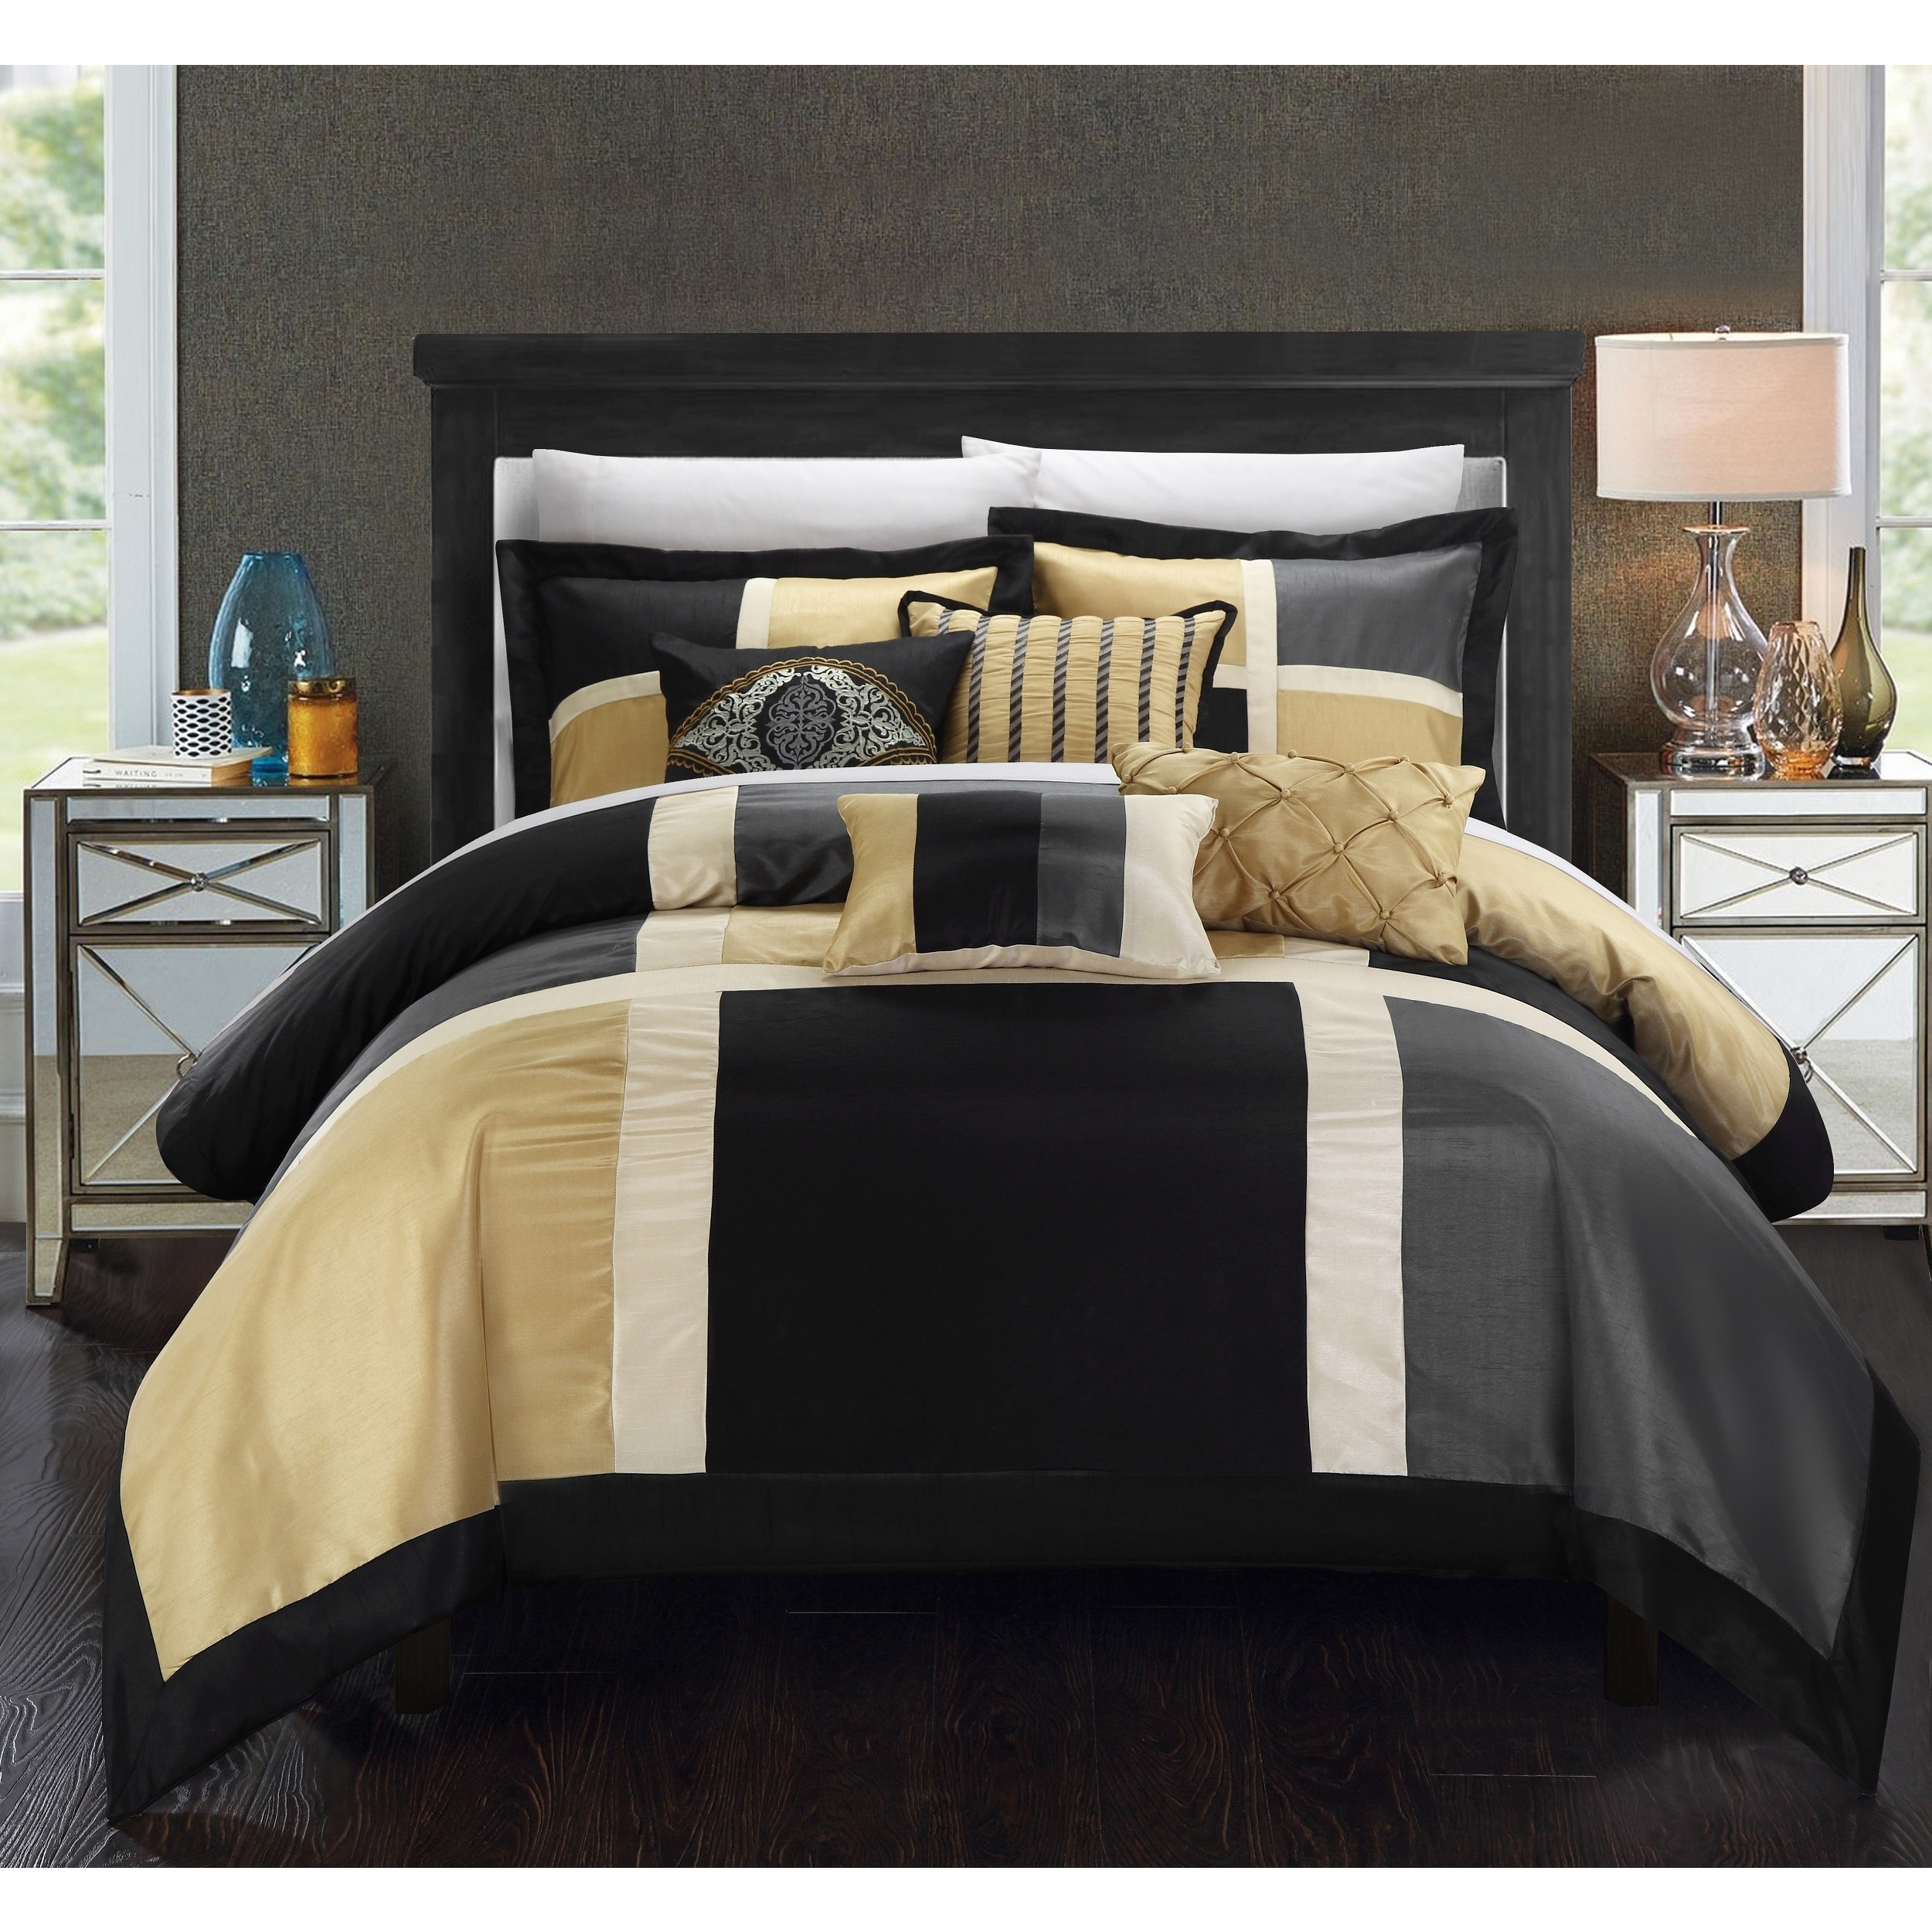 piece comforter set com bedding cotton bed free noelle on madison bath shipping park product overstock